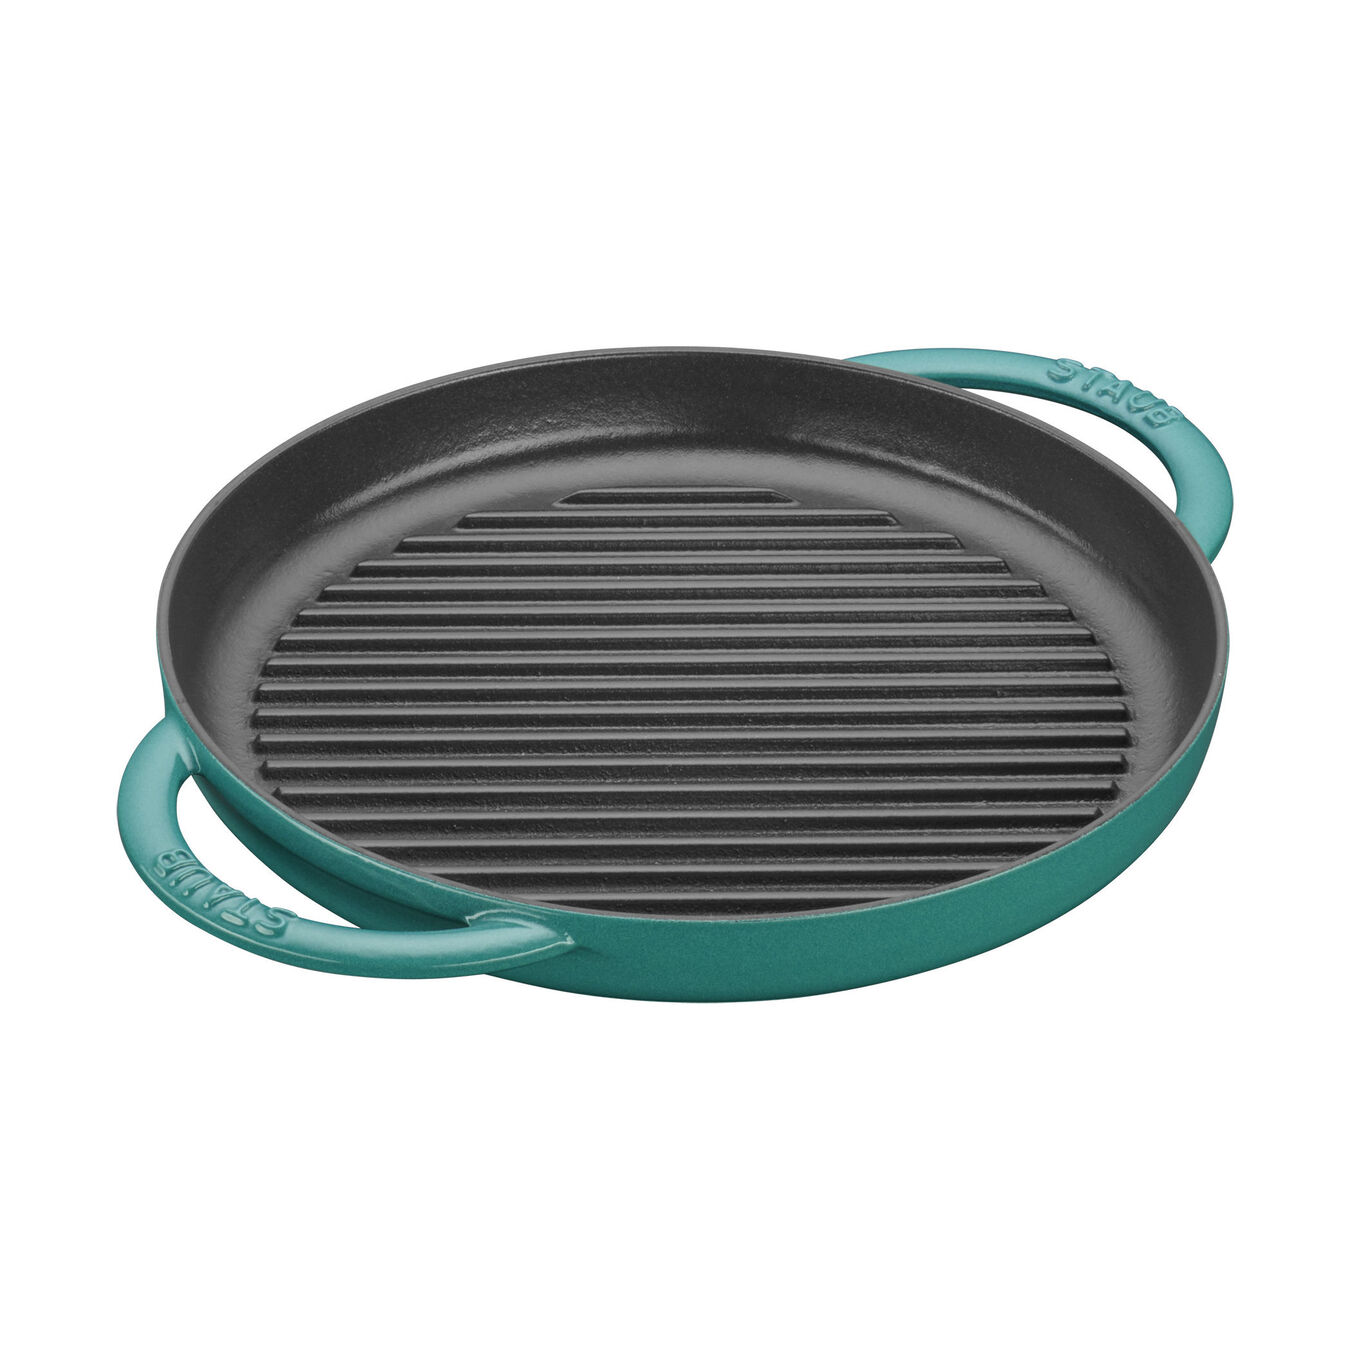 10-inch, Pure Grill, turquoise,,large 1